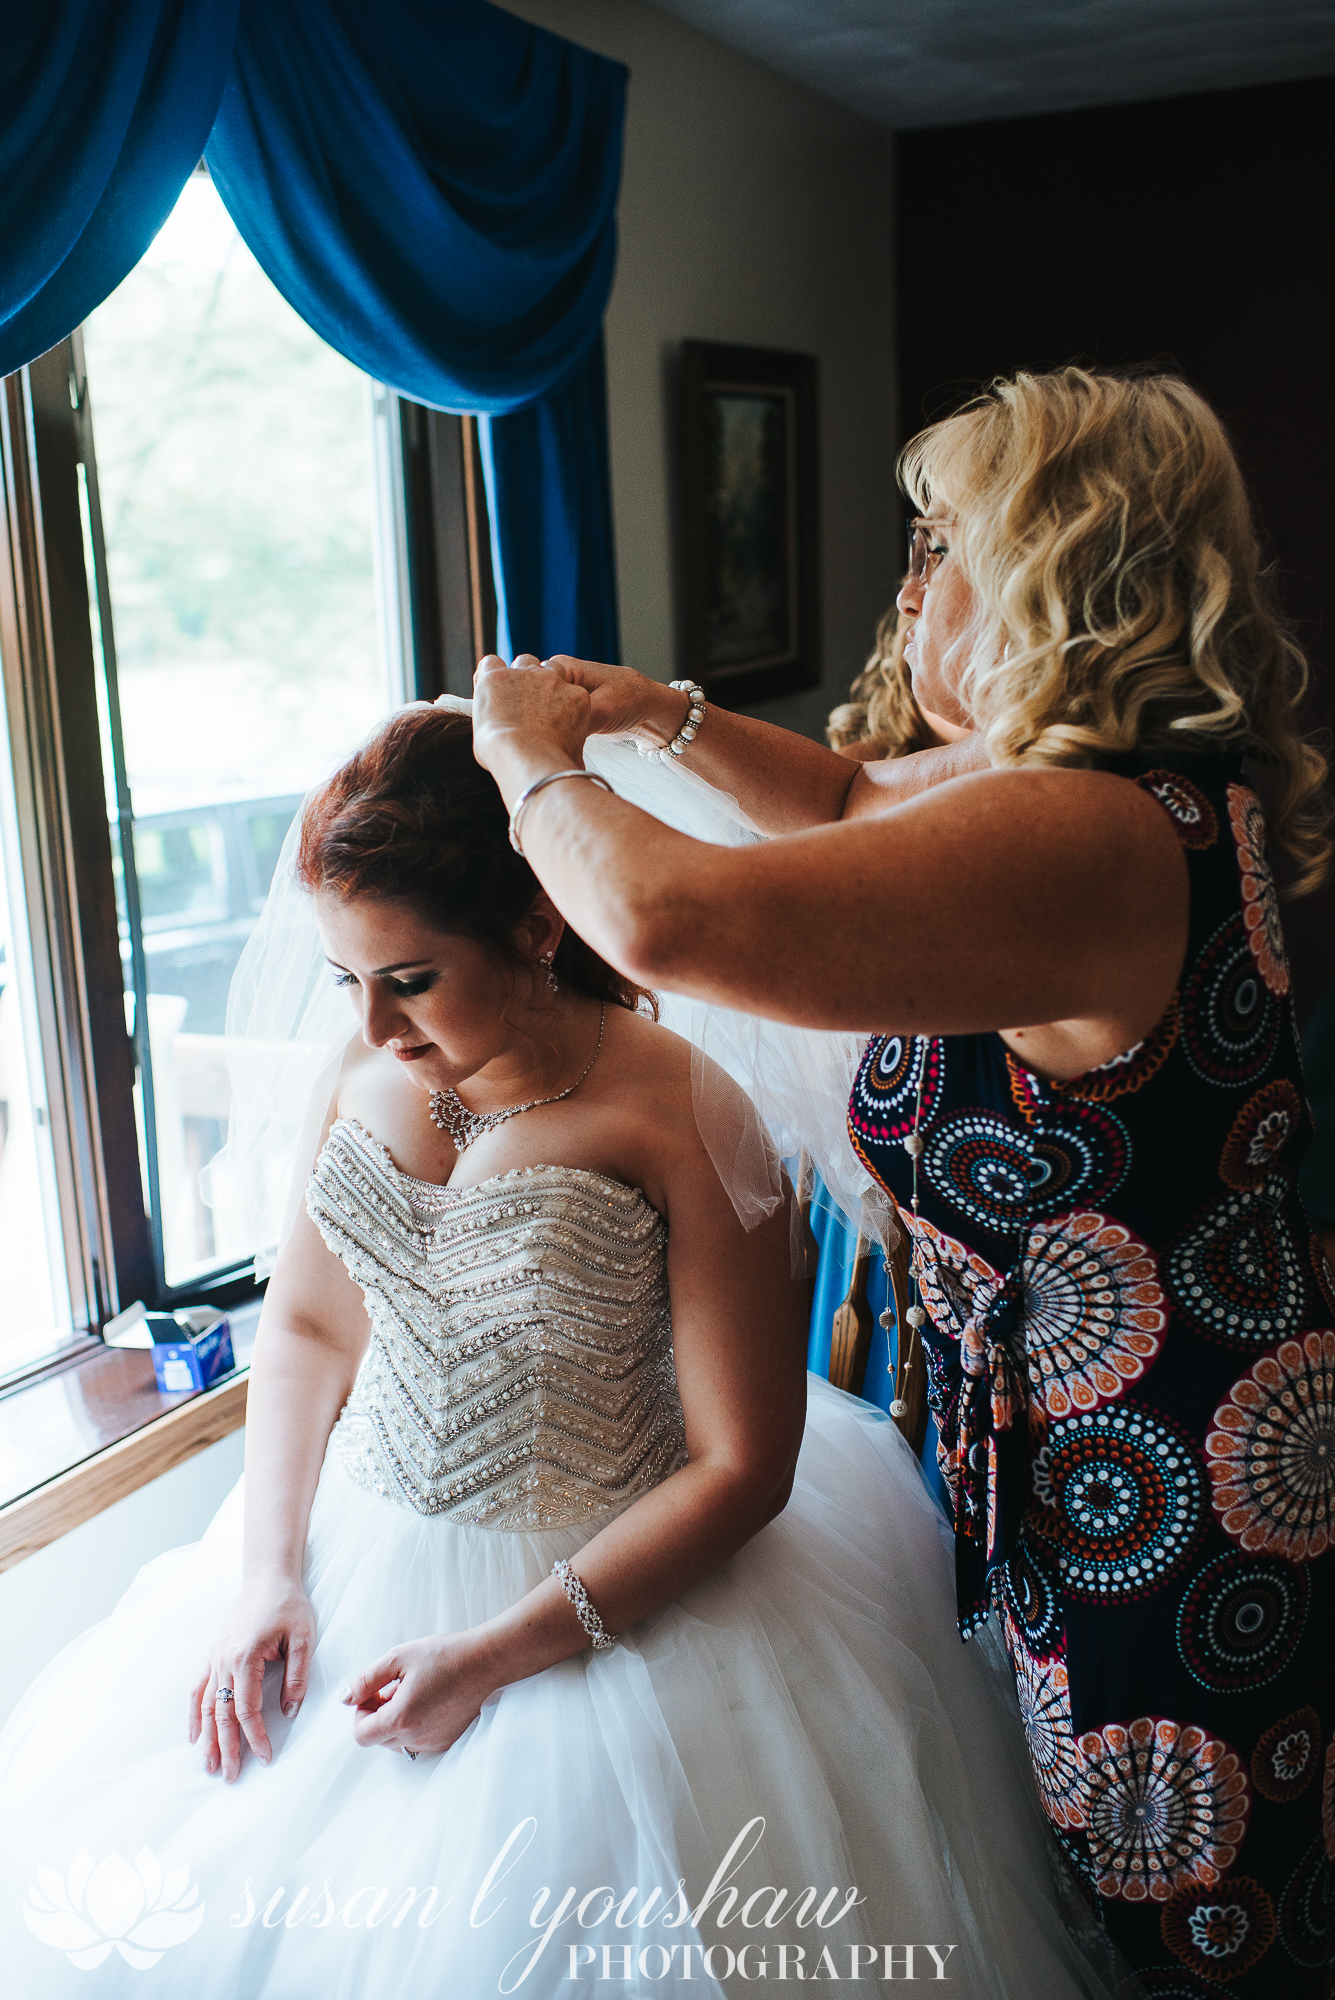 BLOG Kelly and DJ Roberts 08-25-2018 SLY Photography LLC-26.jpg